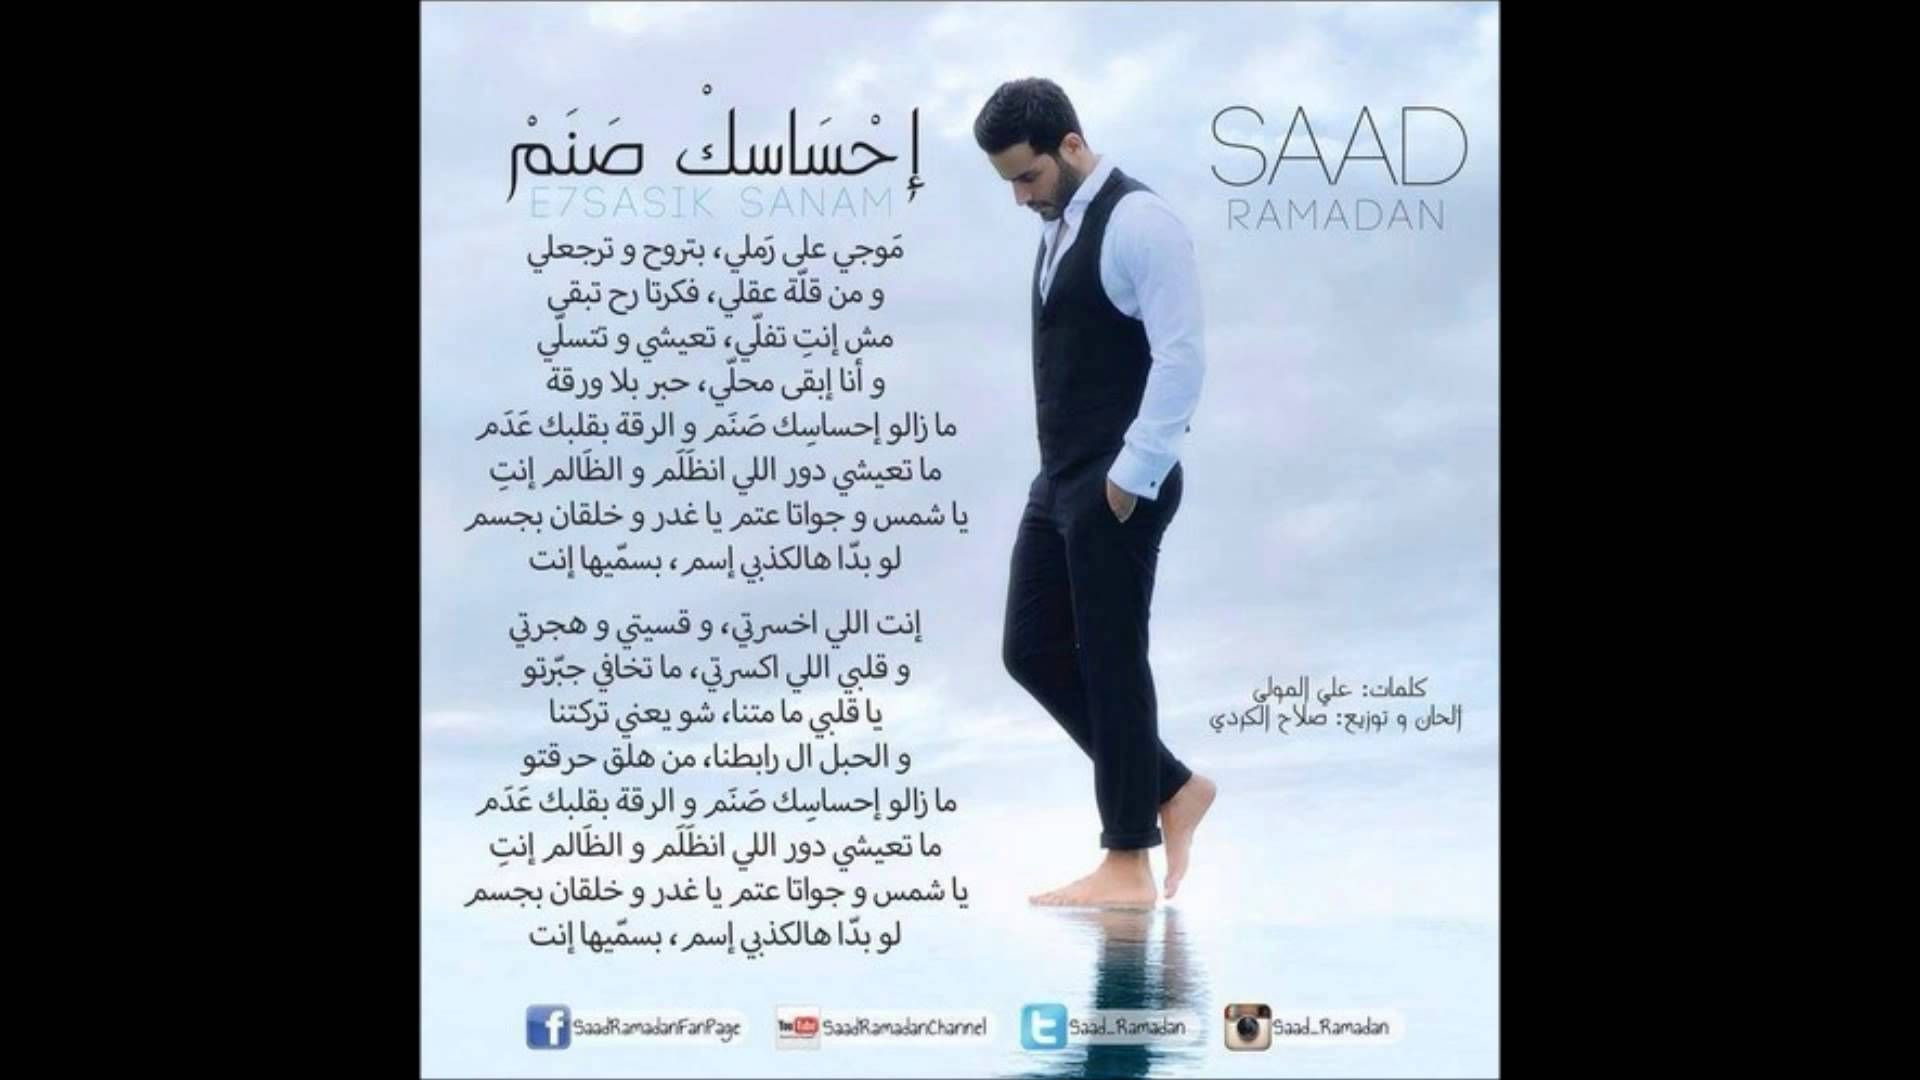 Saad Ramadan Ehsasik Sanam 2013 سعد رمضان احساسك صنم Youtube Ramadan Music